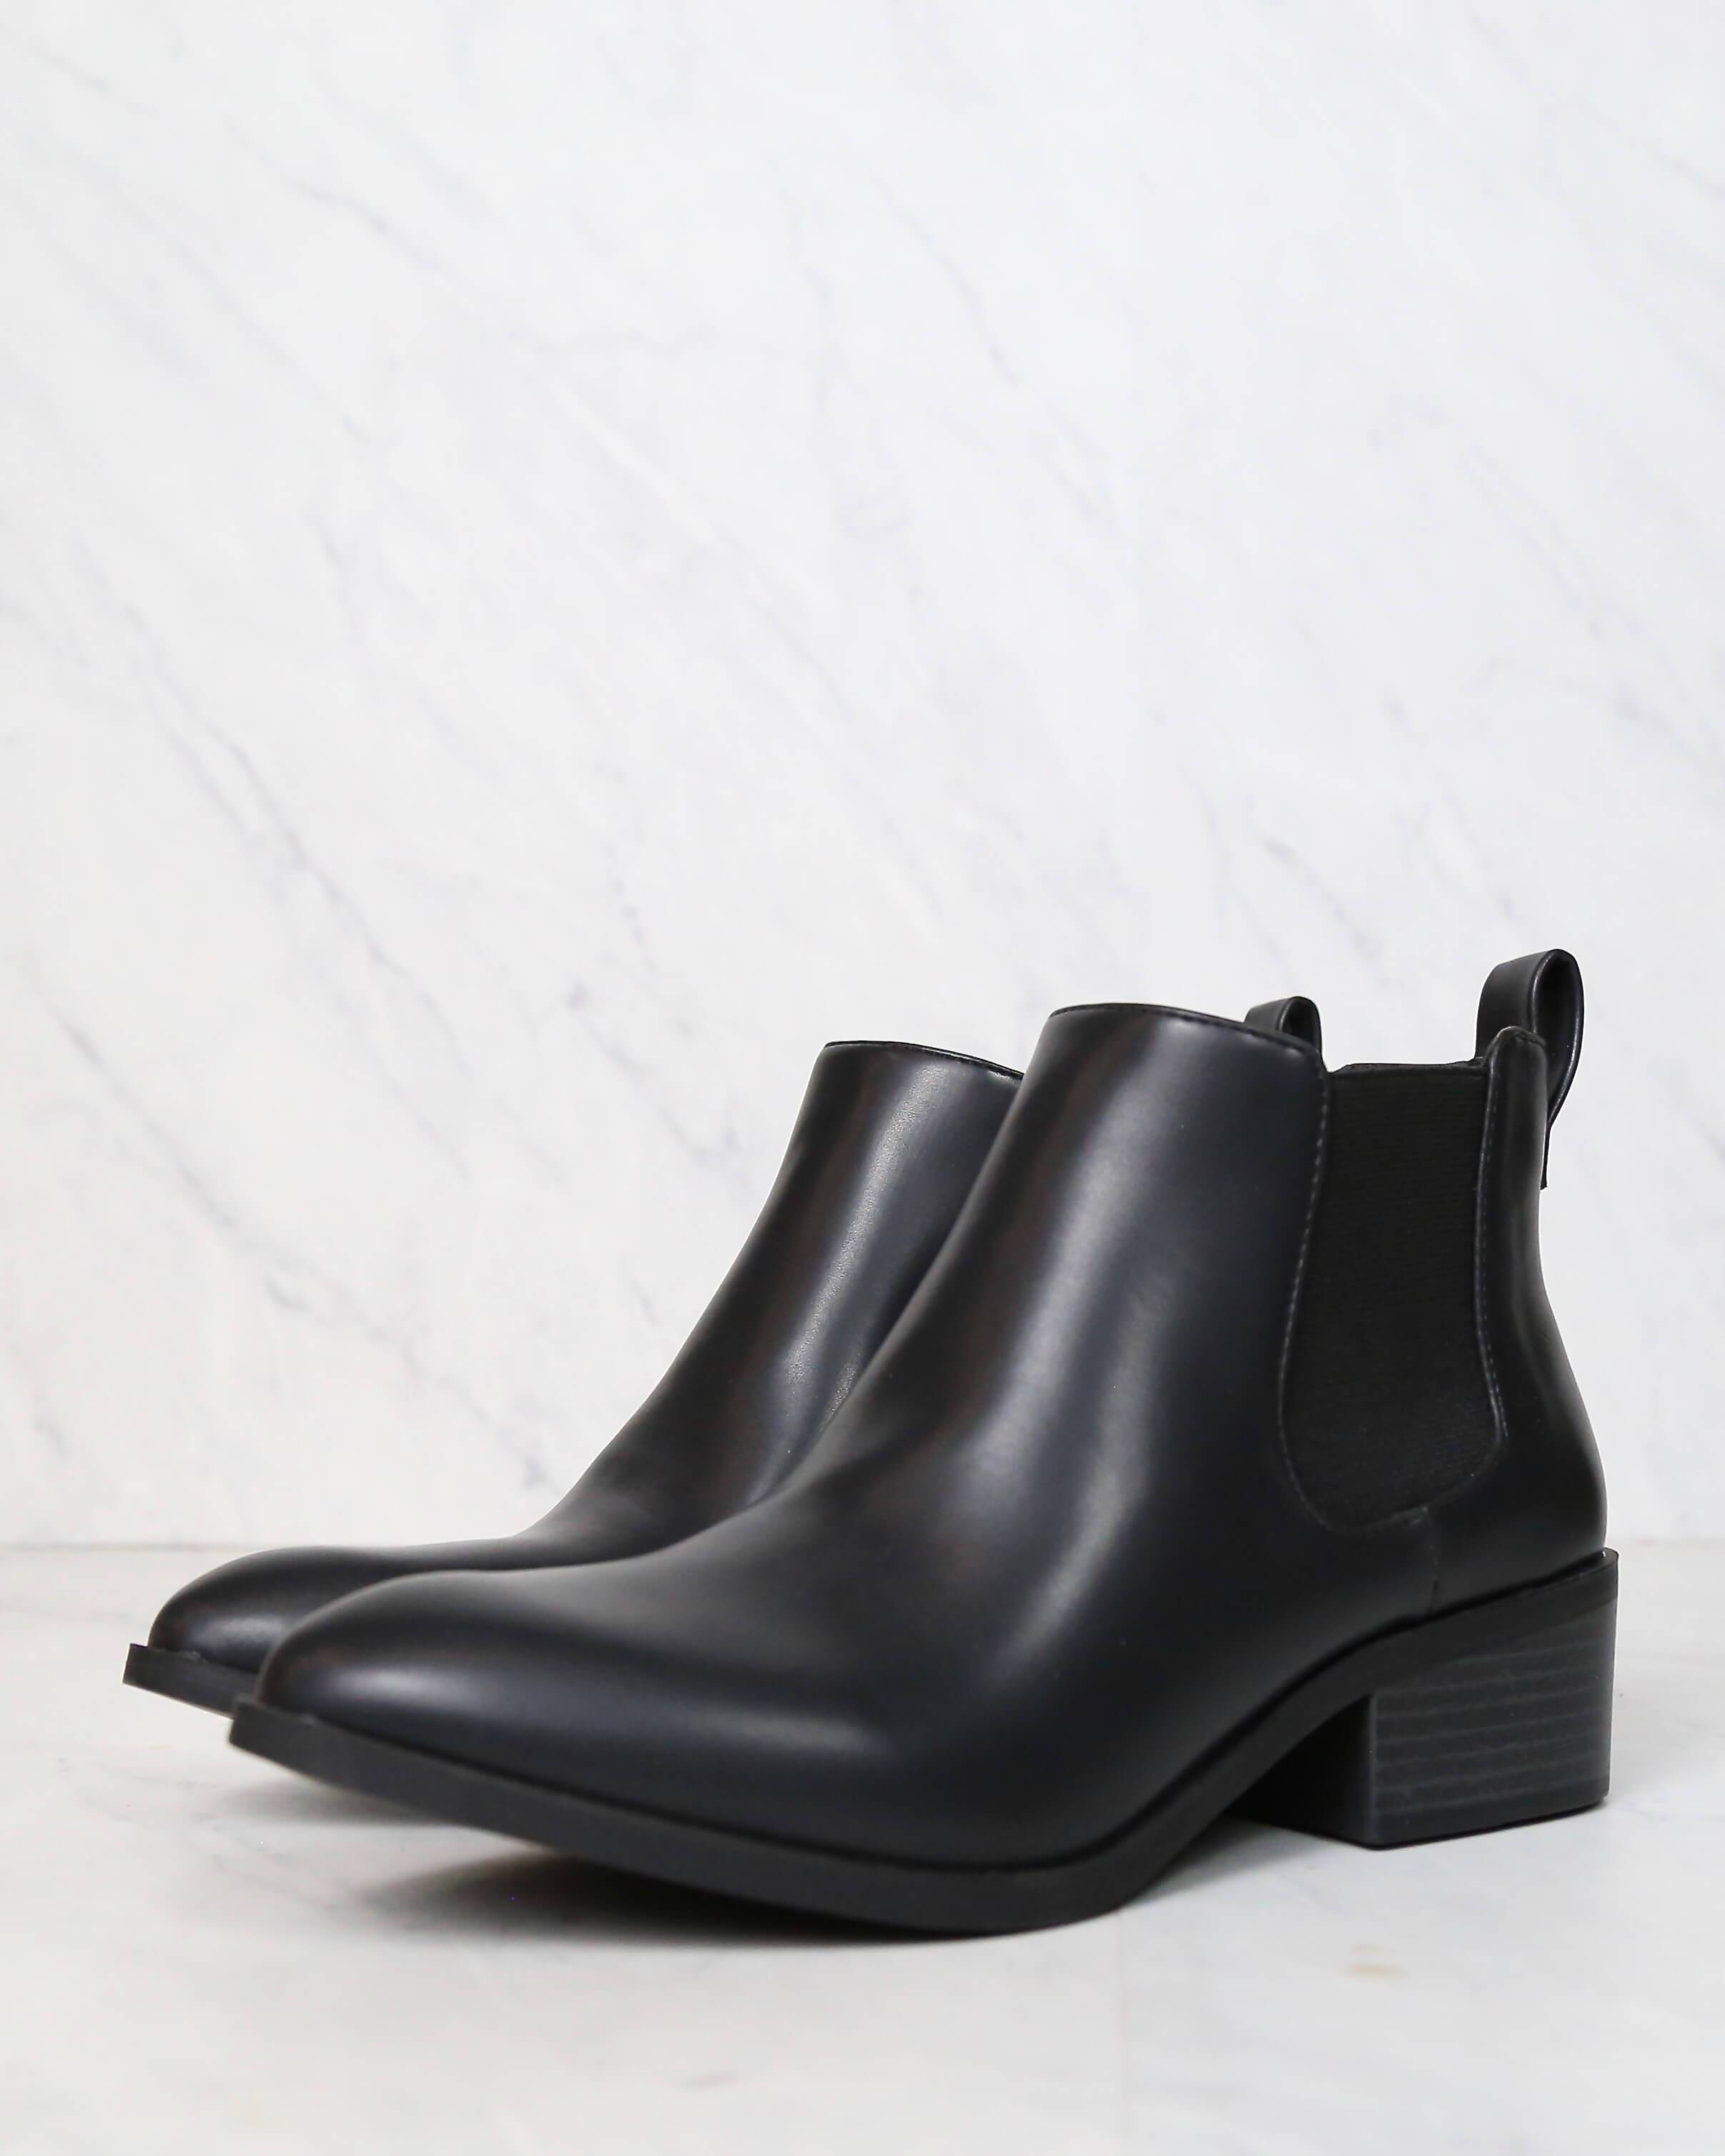 Image of BC Footwear - Partner Modern Chelsea Ankle Boots in Black